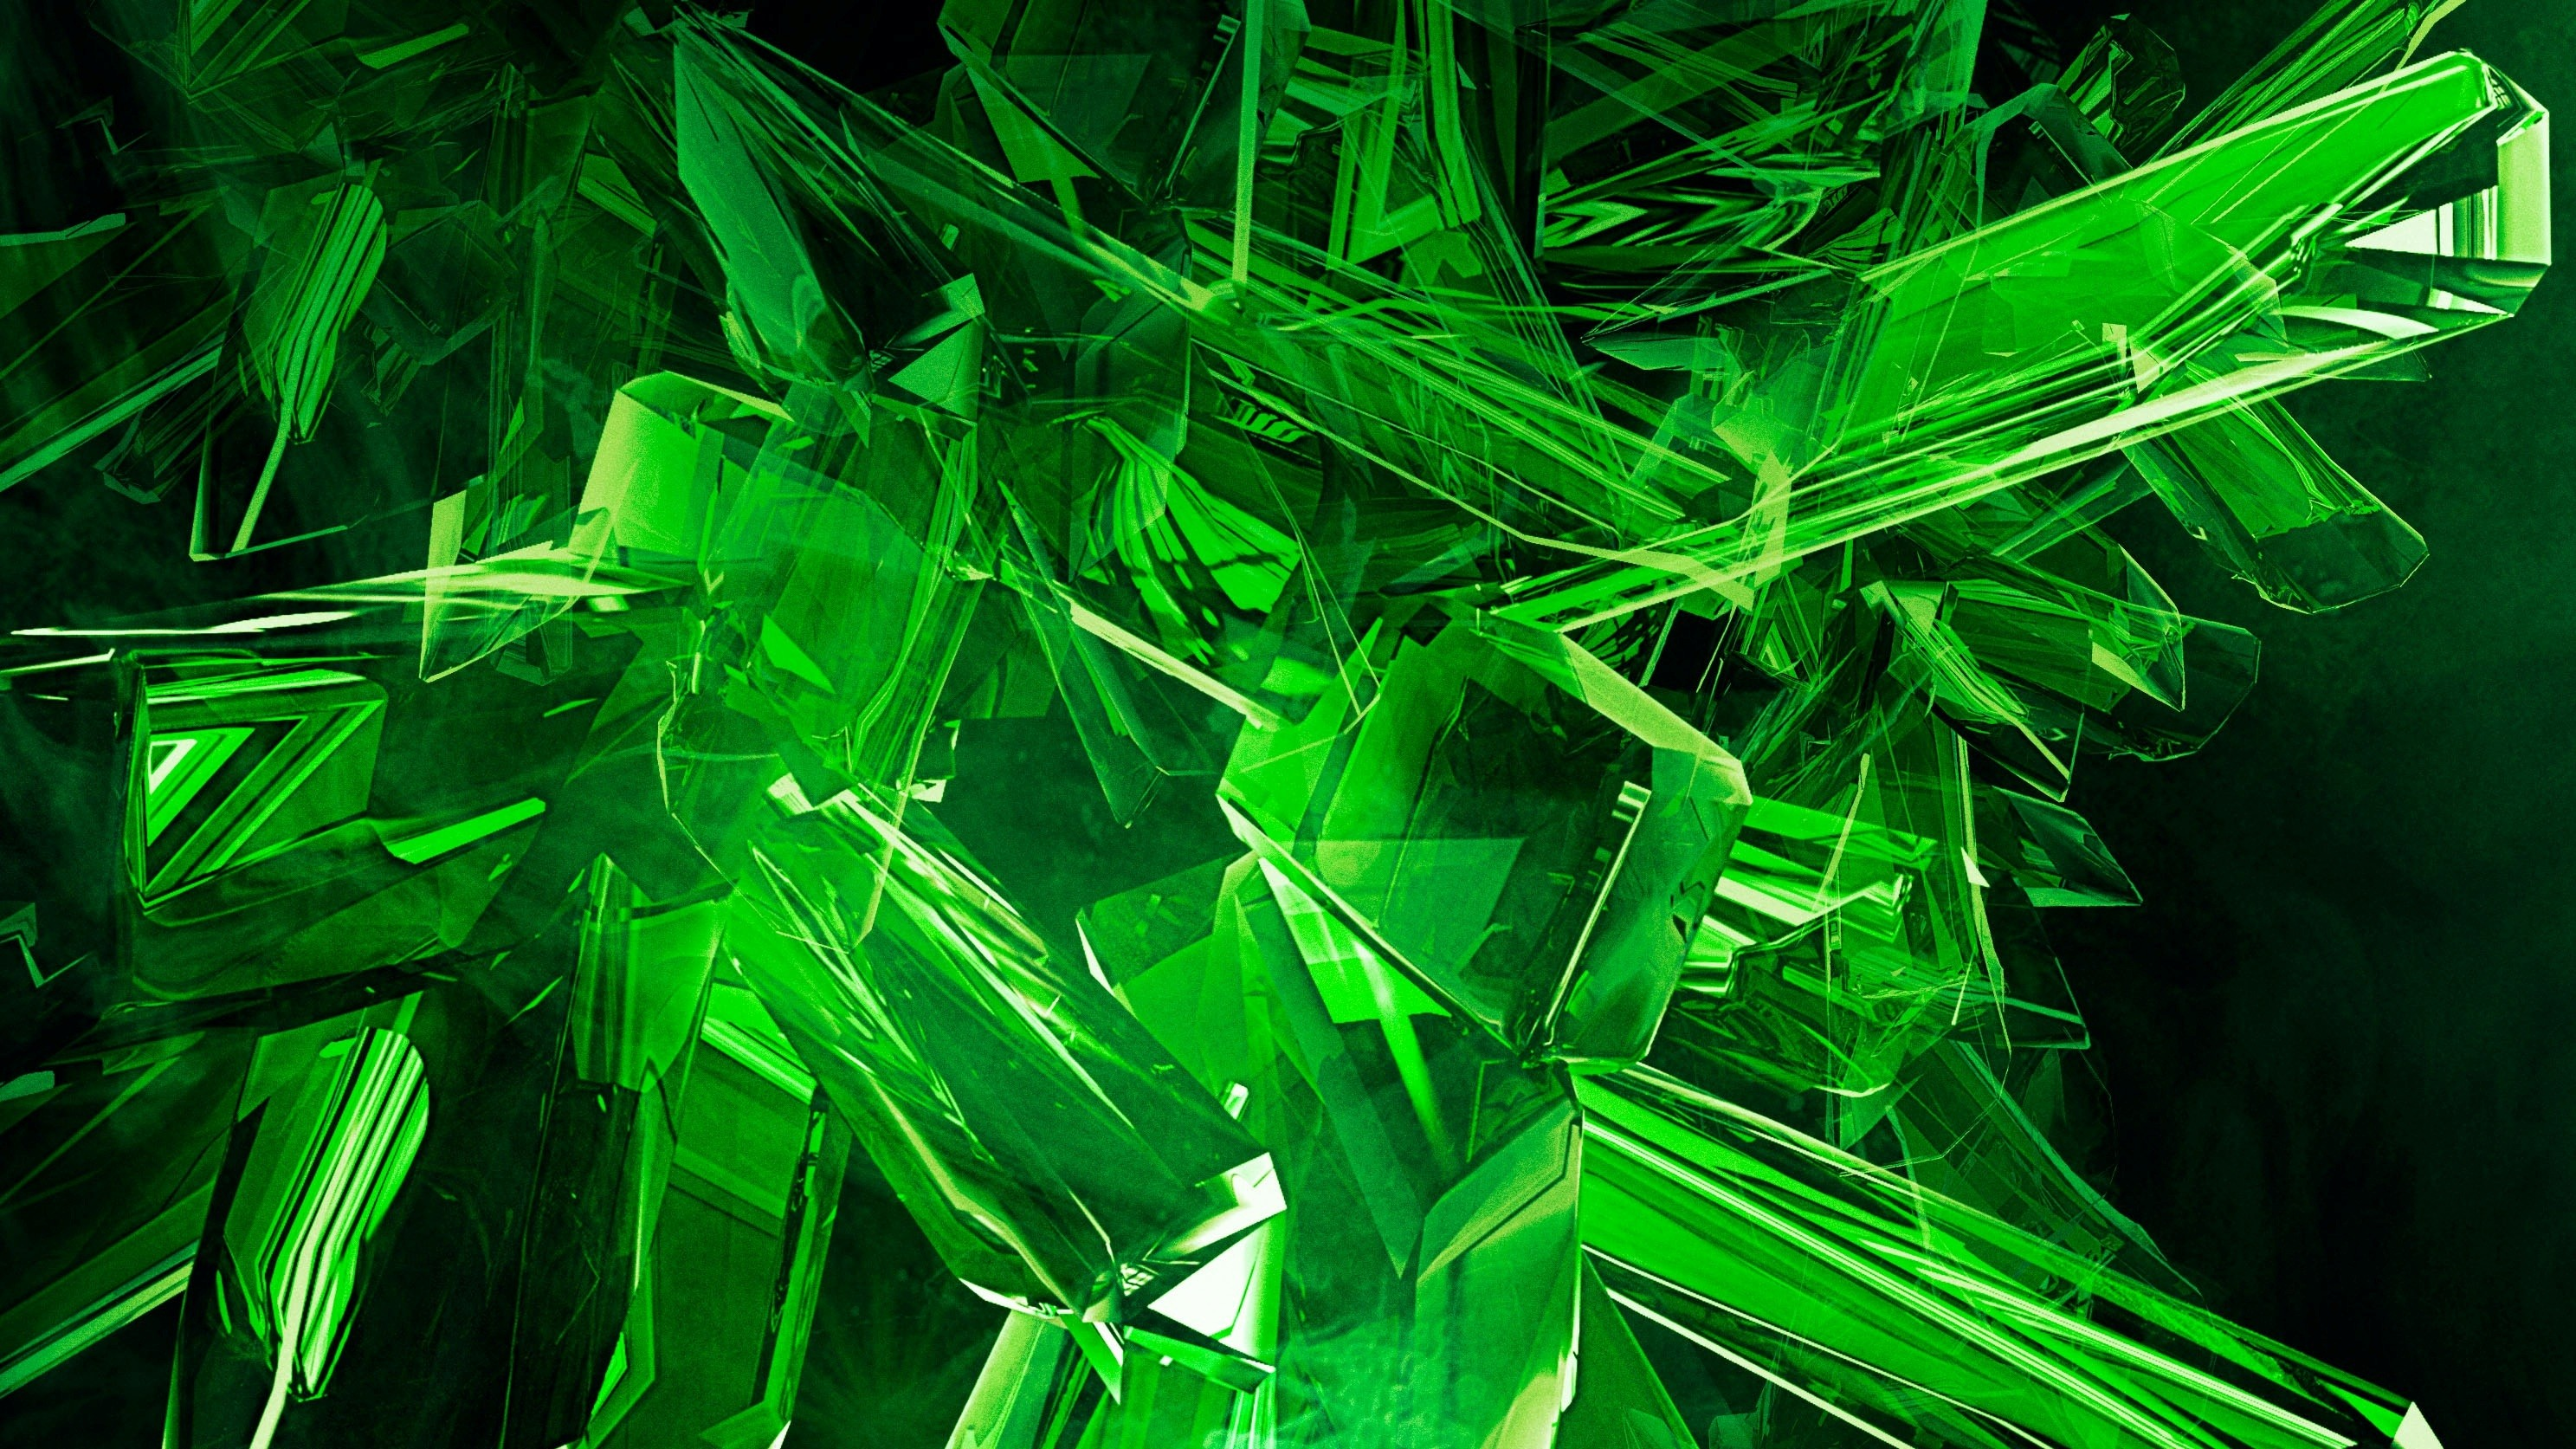 61 Cool Green Backgrounds 1 Download Free Stunning High